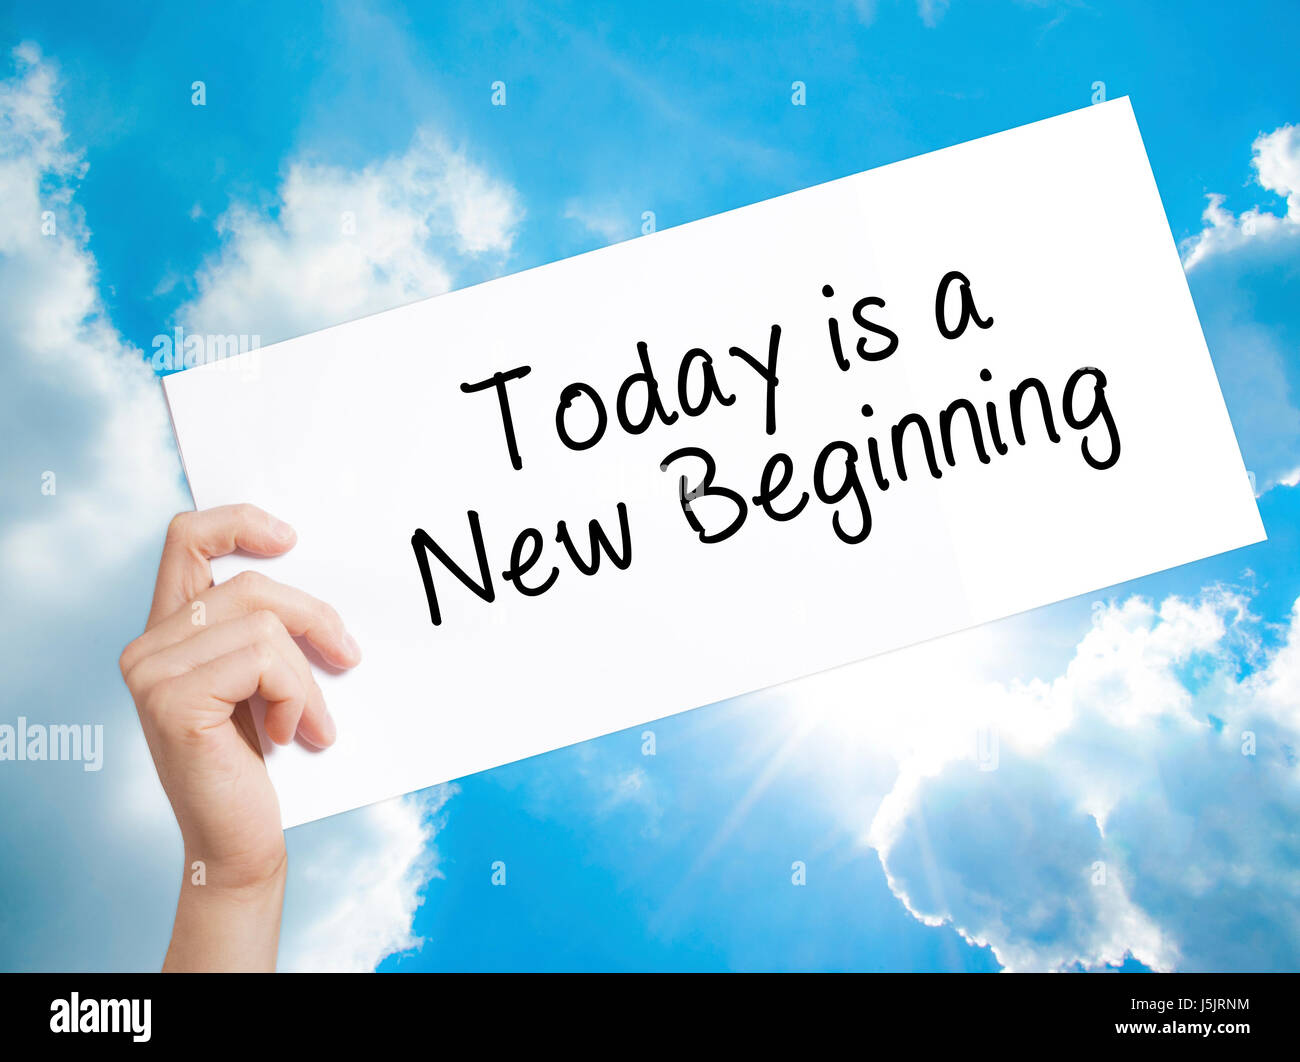 e6300f5838ee Today is a New Beginning Sign on white paper. Man Hand Holding Paper with  text. Isolated on sky background. Business concept. Stock Photo